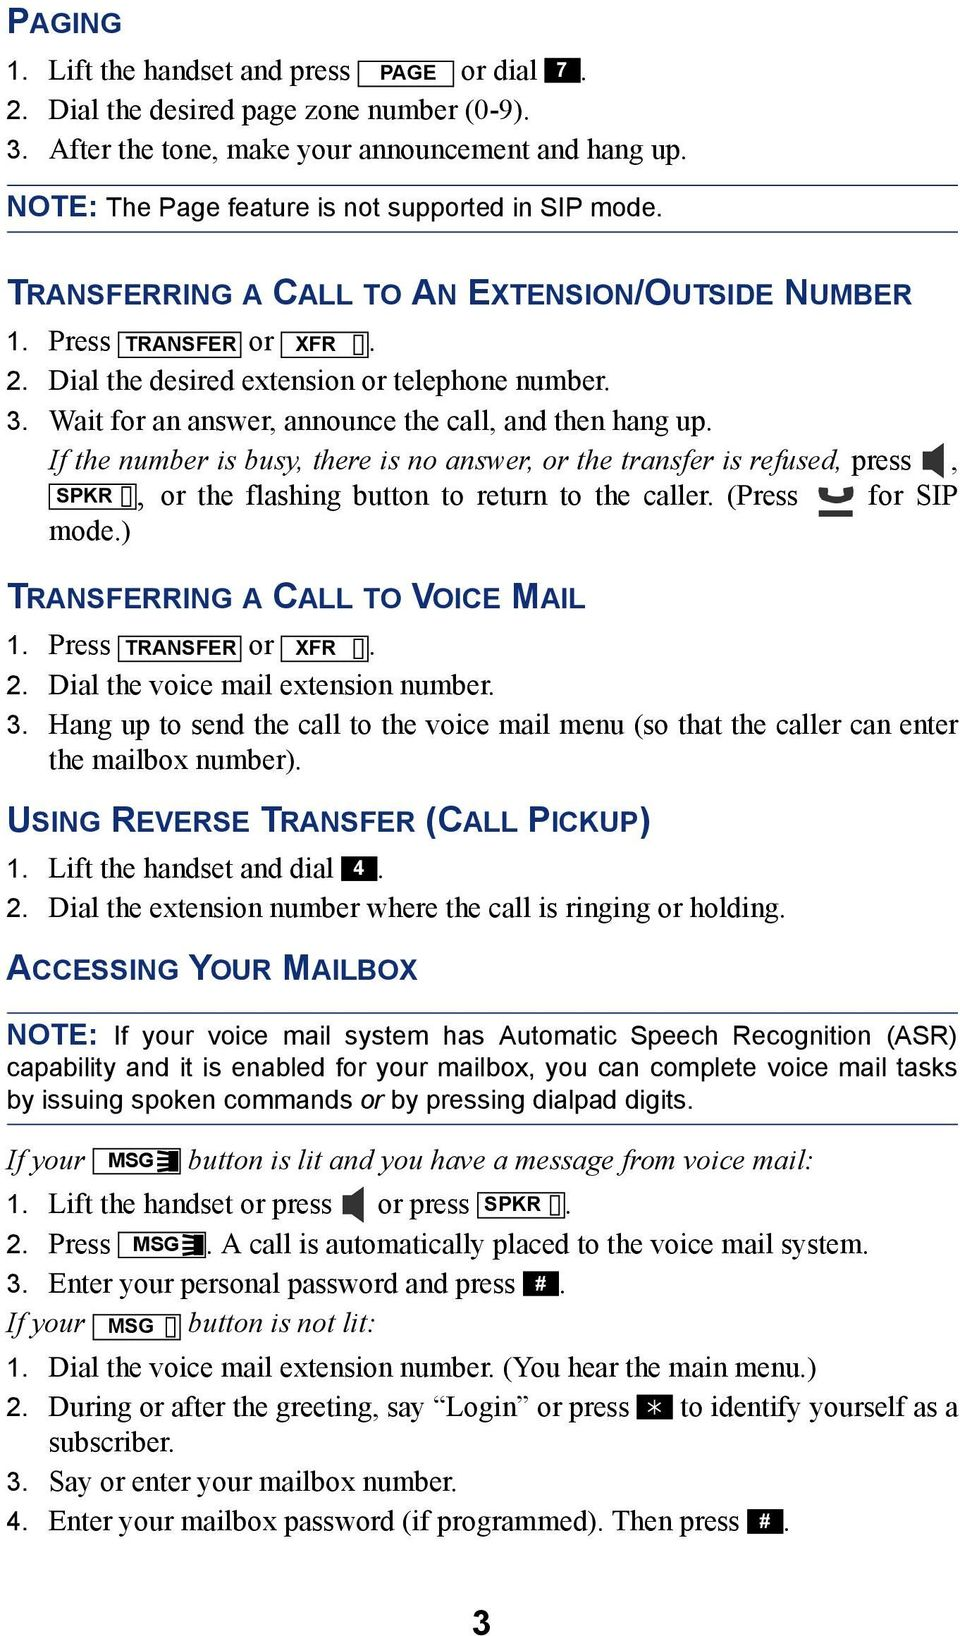 Wait for an answer, announce the call, and then hang up. If the number is busy, there is no answer, or the transfer is refused, press, SPKR, or the flashing button to return to the caller.